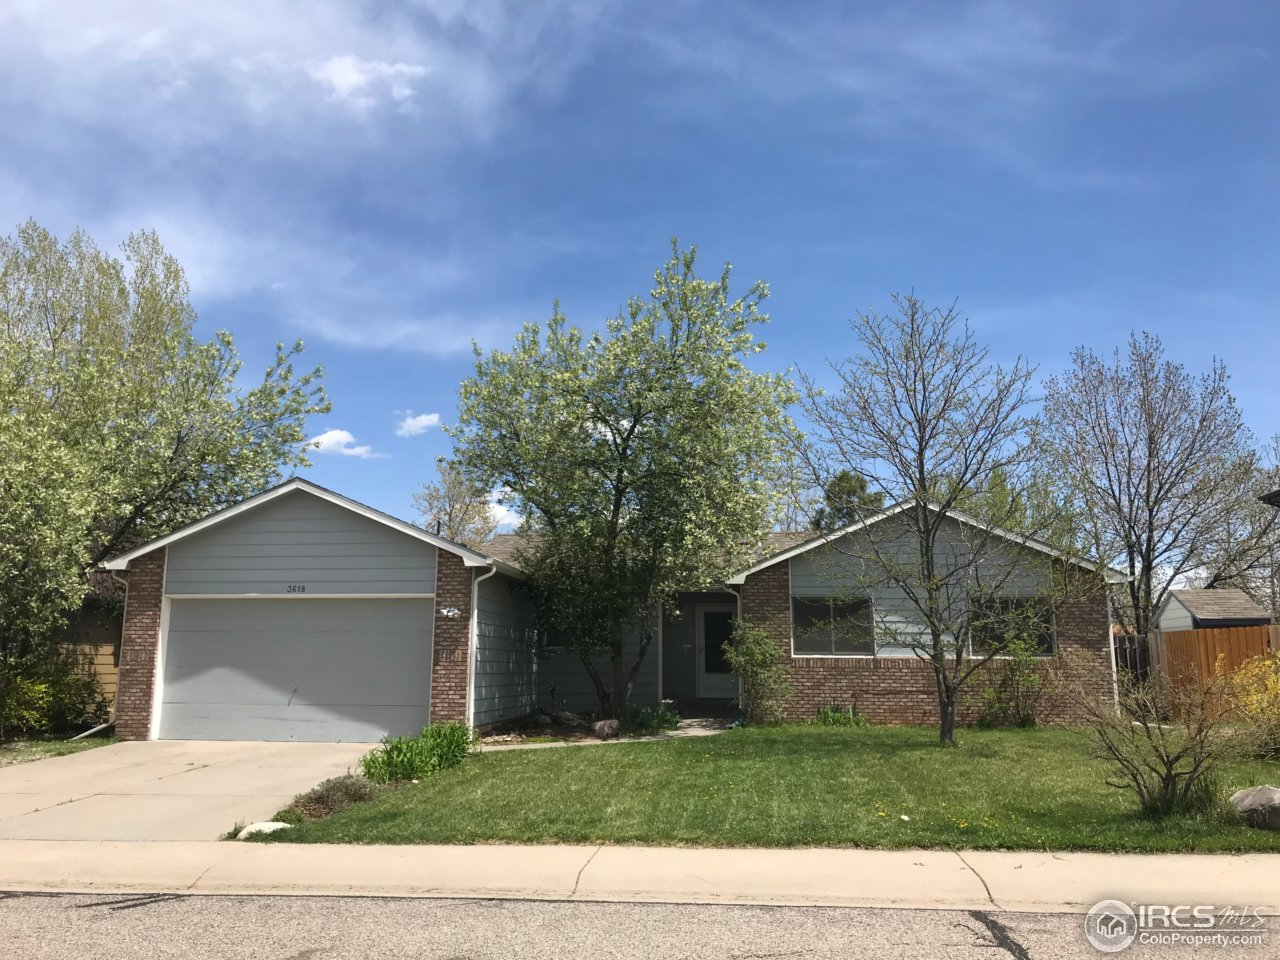 3618 Platte Dr, Fort Collins CO 80526